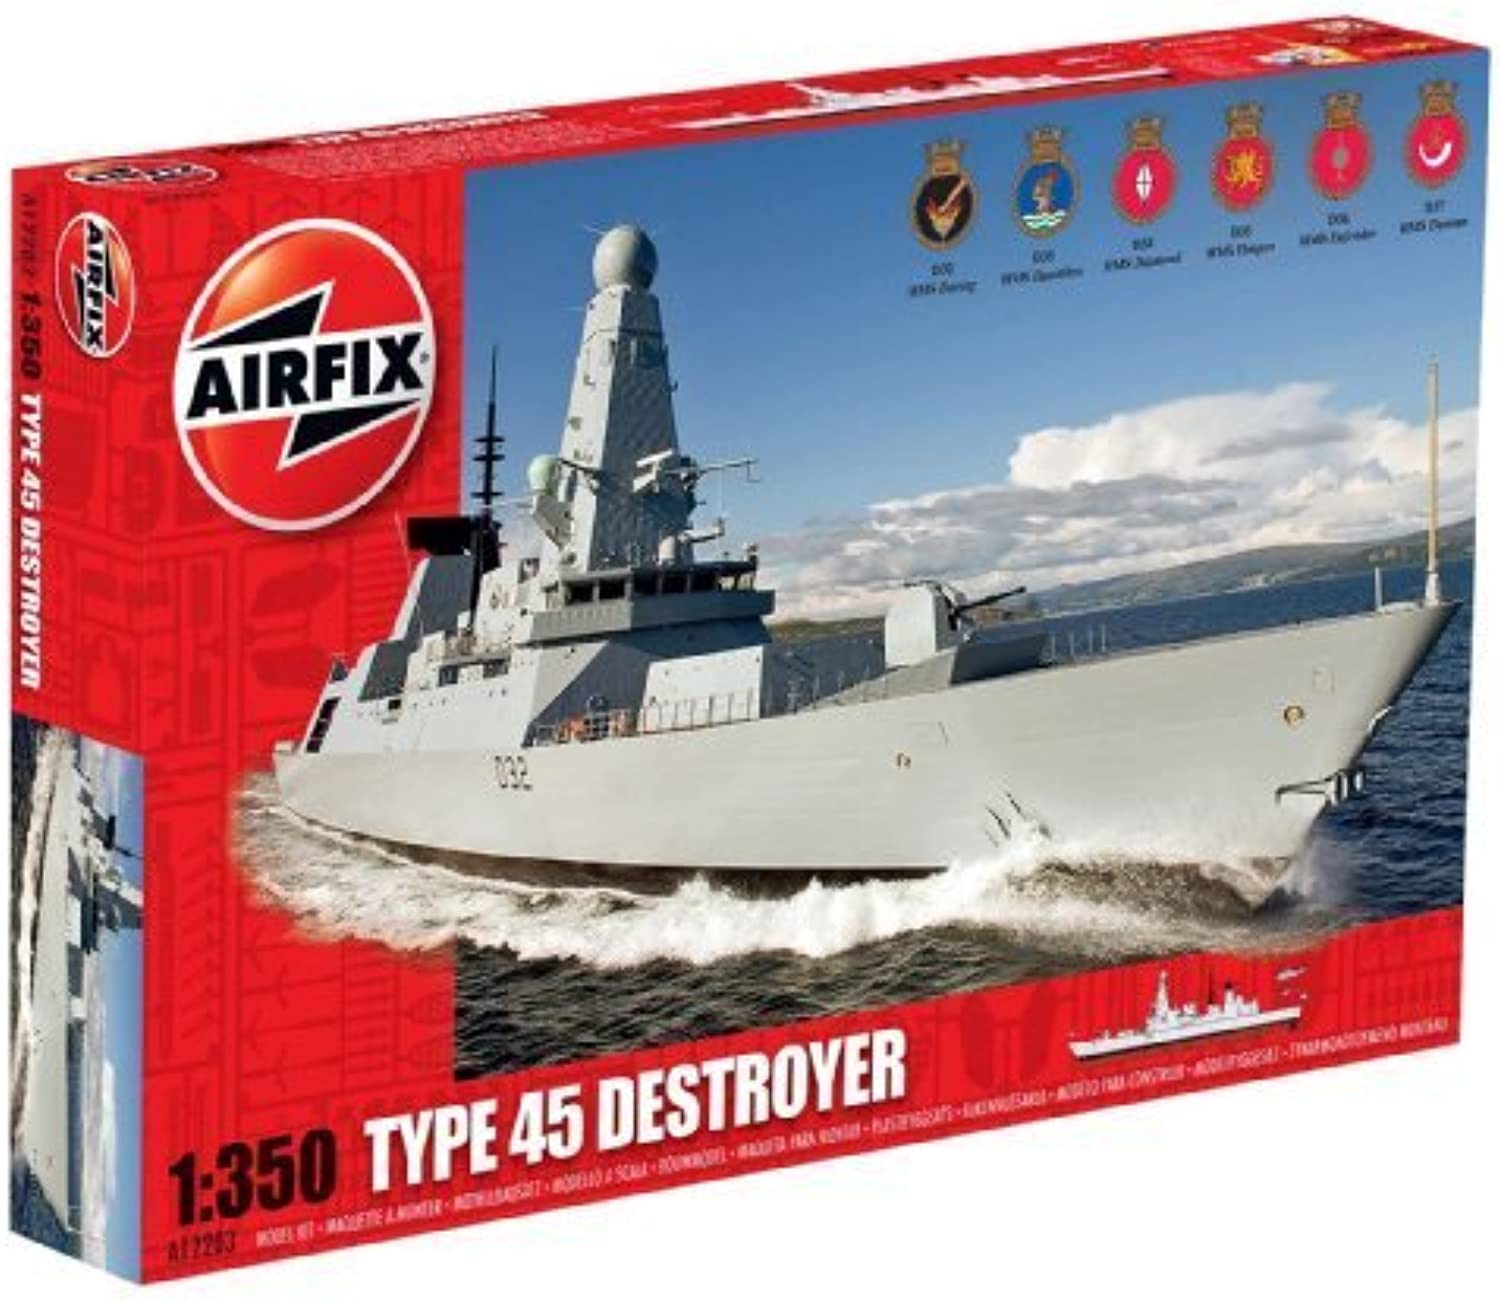 Airfix HMS Daring Type 45 Destroyer Boat Building Kit, 1 350 Scale by Airfix